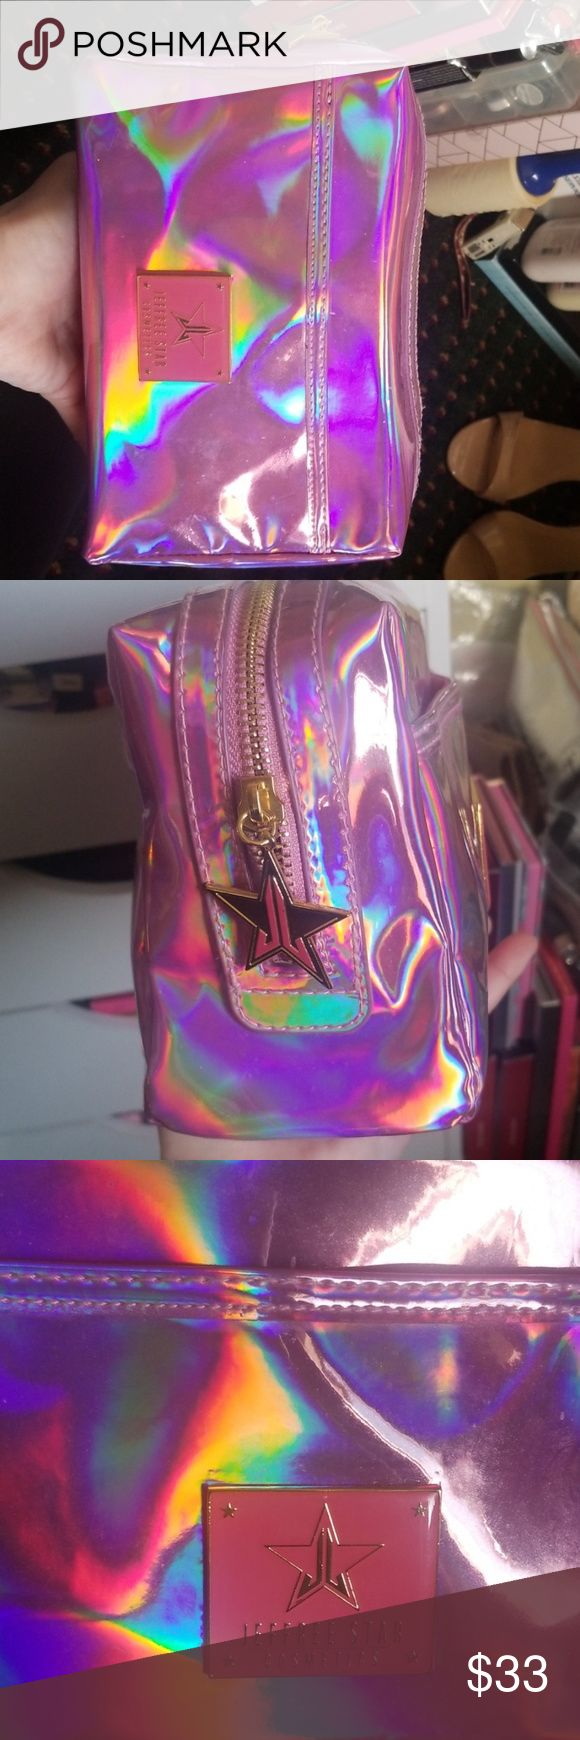 Sold out pink holo j☆ makeup bag SOLD OUT Pink holographic